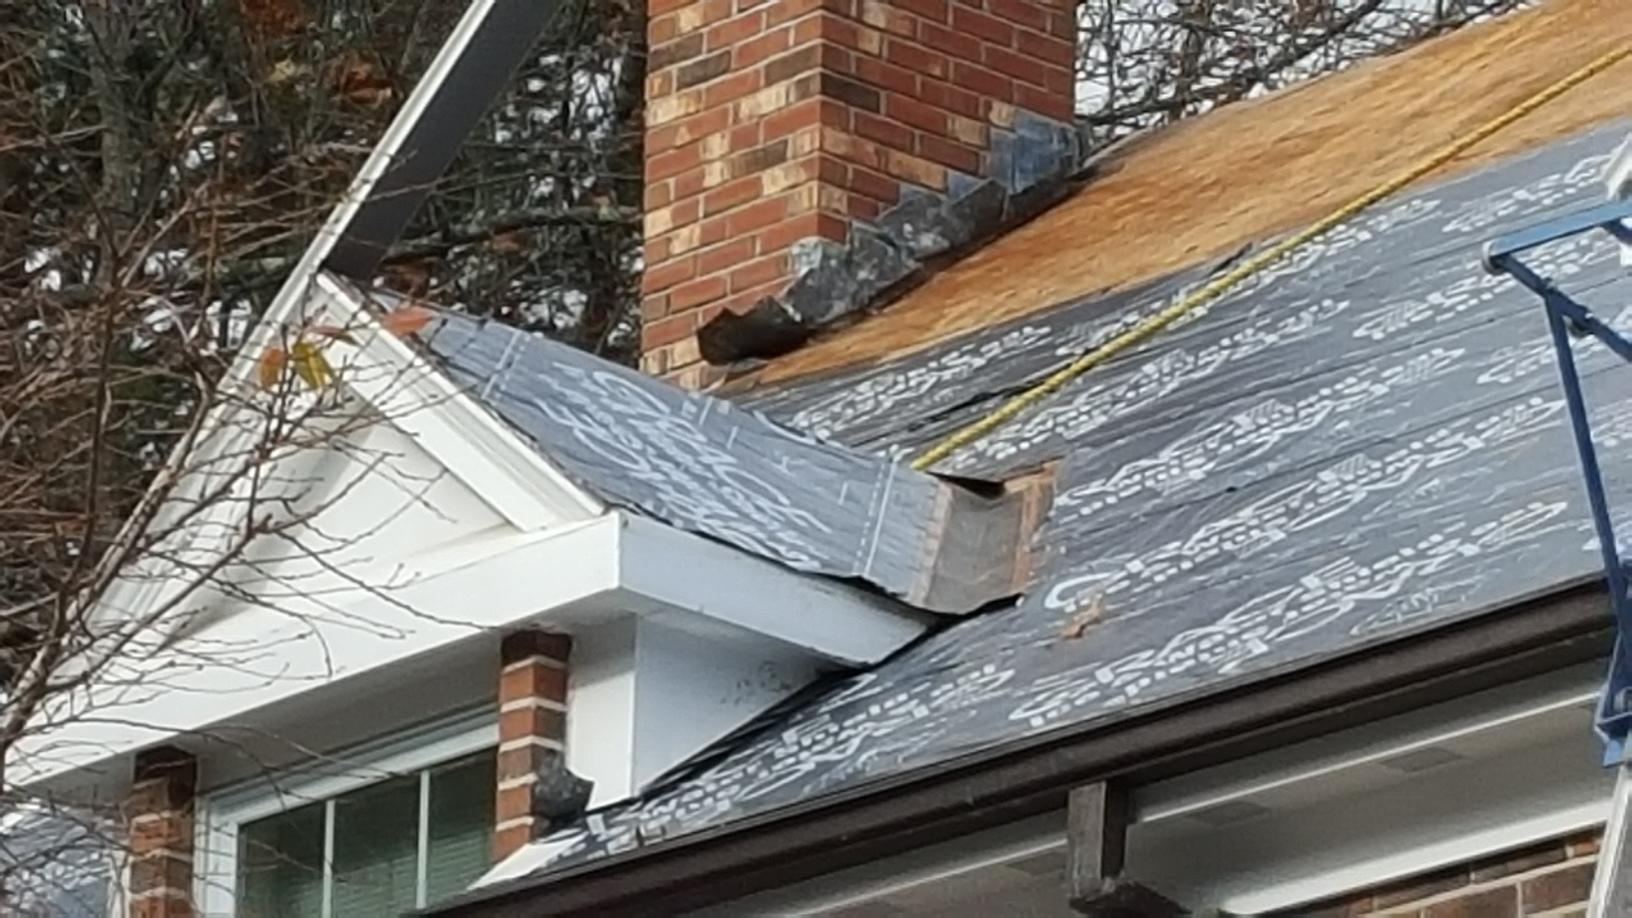 Roofing Services Shingle Roof Replacement On Roof With